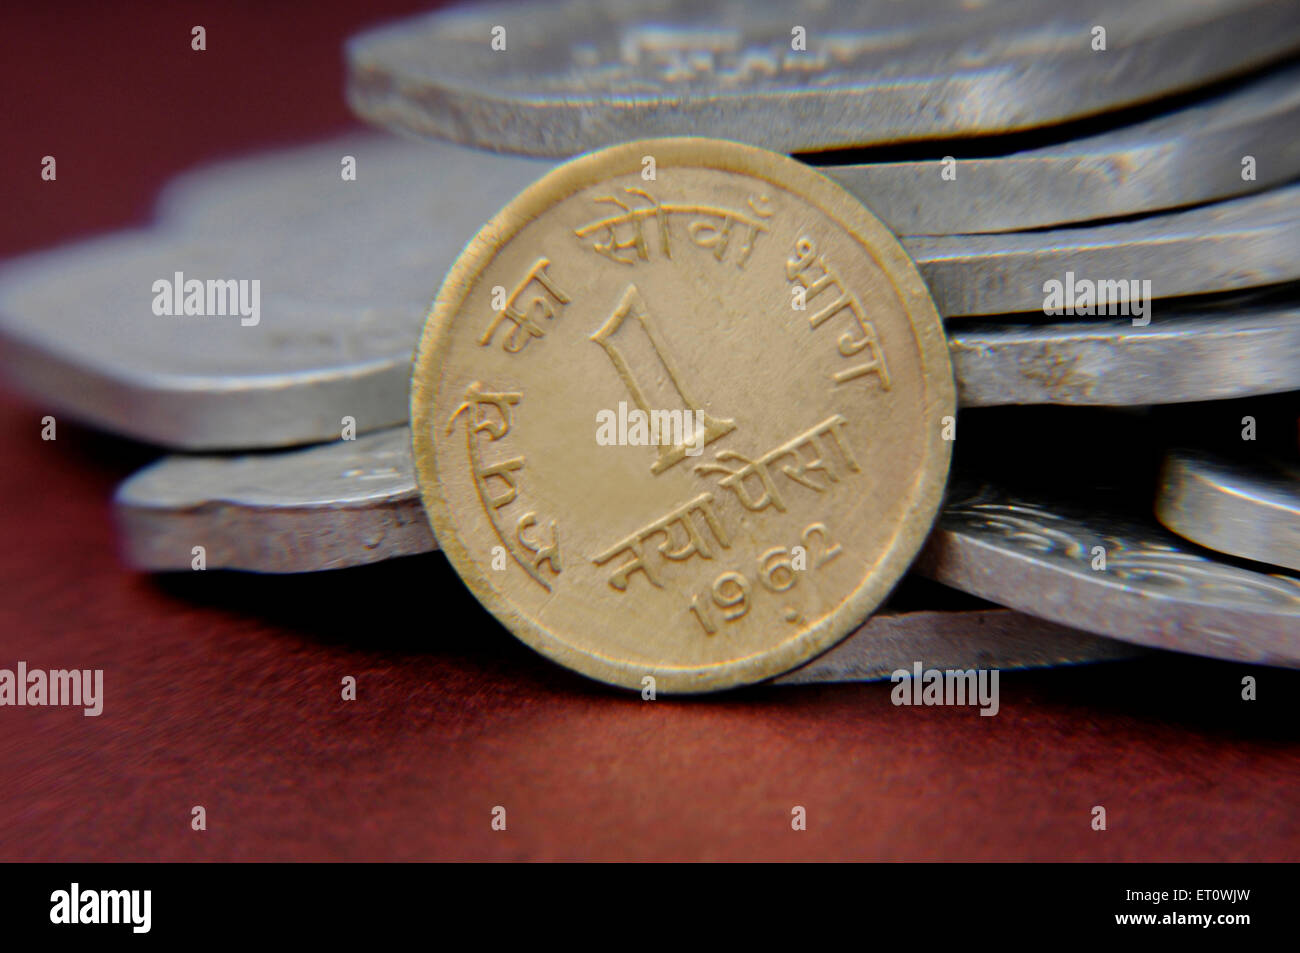 Old Indian Coin Stock Photos & Old Indian Coin Stock Images - Alamy